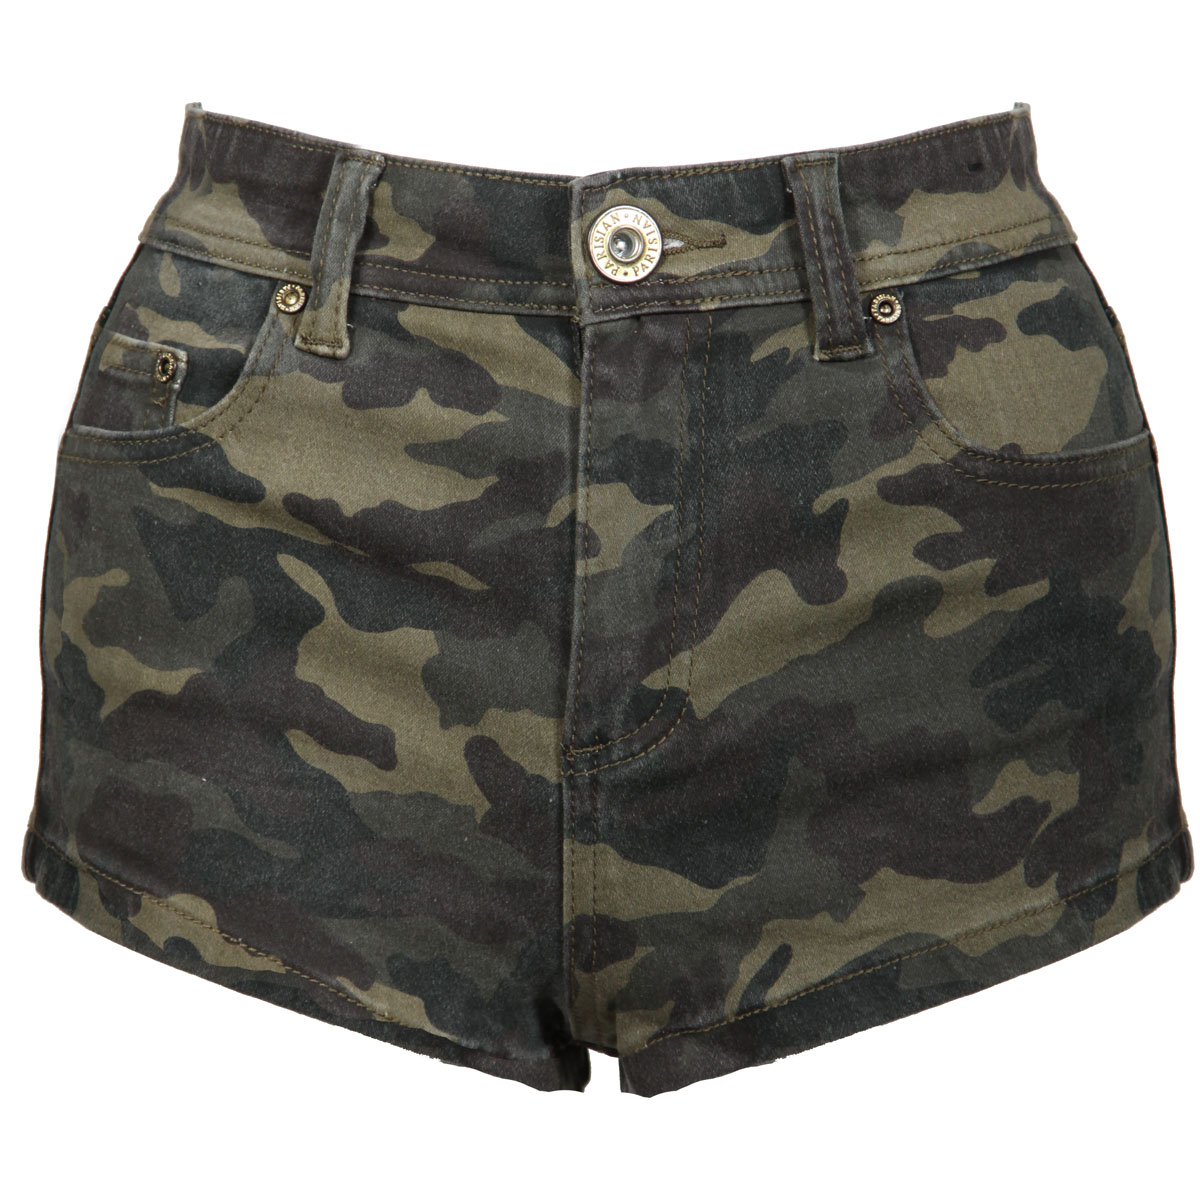 Camo Cargo Shorts. Create a casual and relaxed look, while still making a bold statement, by accenting a summertime wardrobe with a pair of camo cargo shorts. The flexible and relaxed design of cargo shorts allows the freedom to engage in favorite outdoor activities or lounge in the sun in comfort.